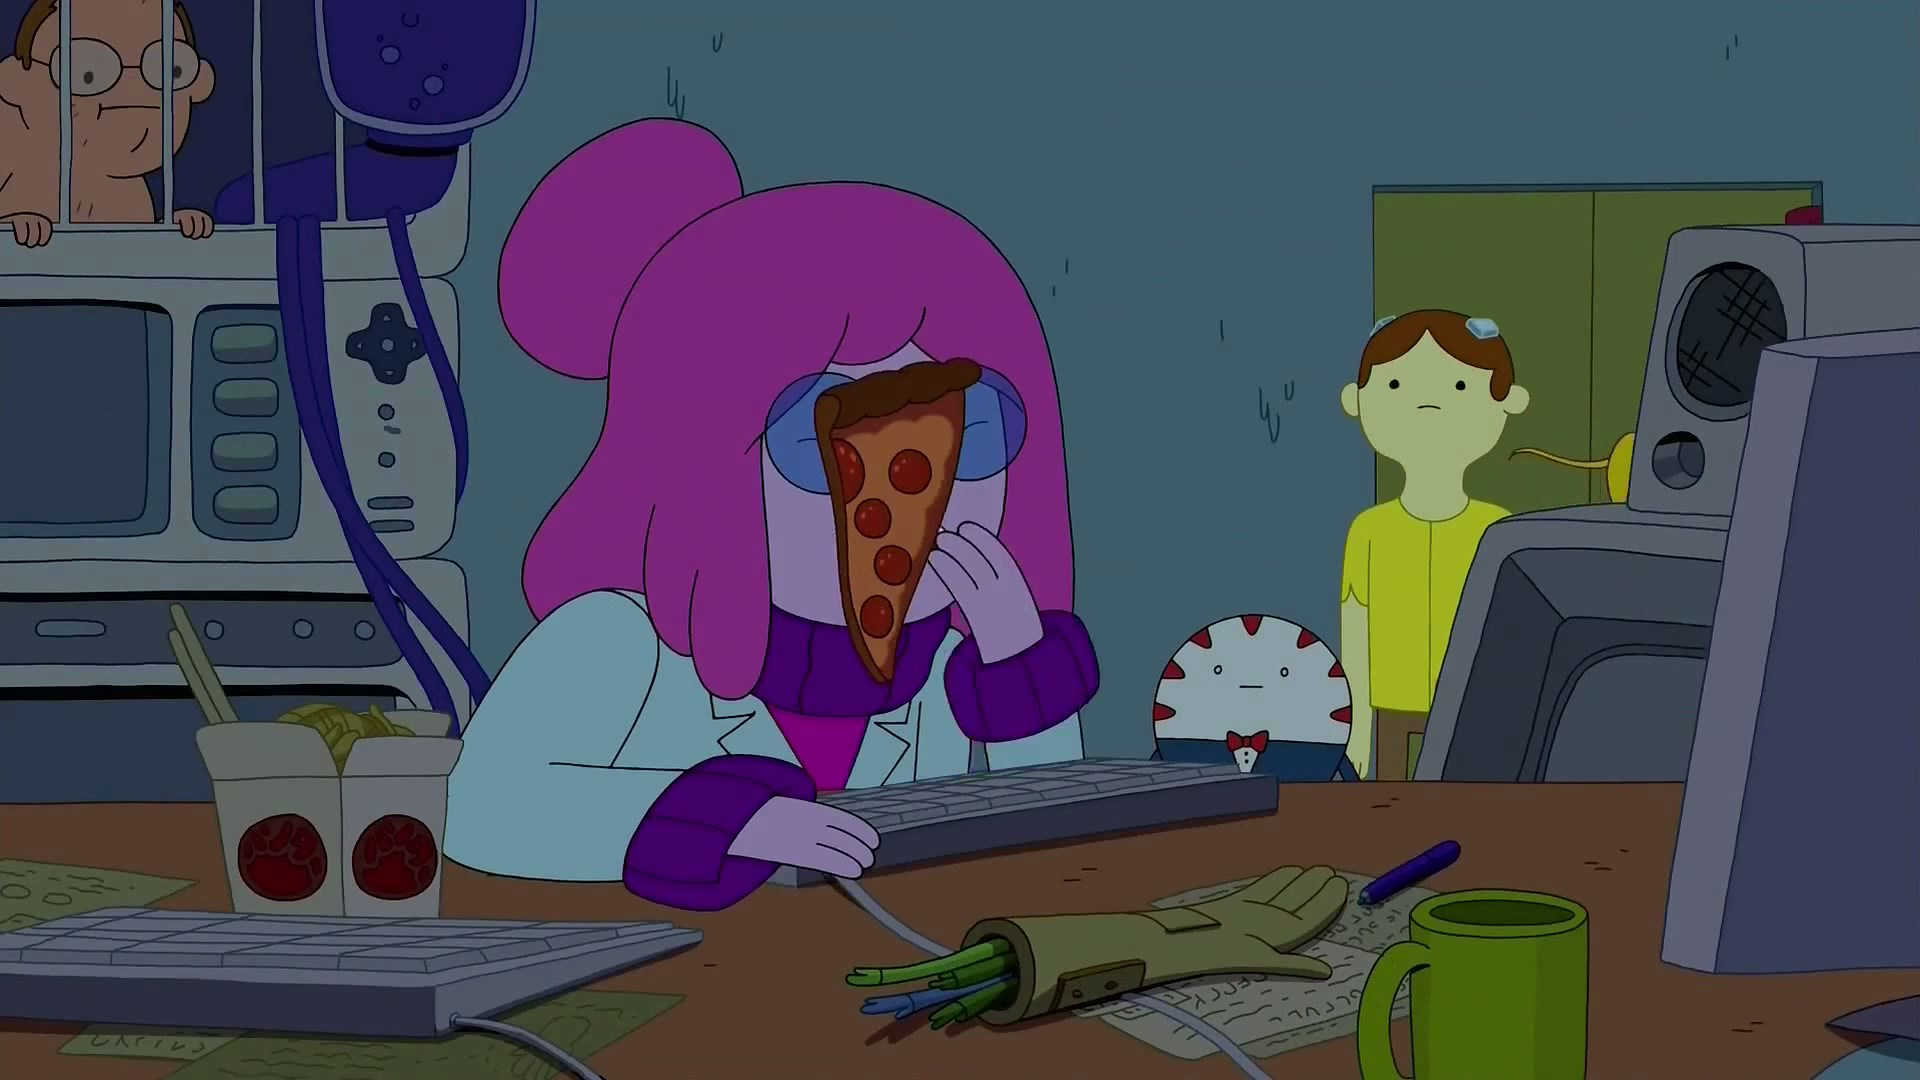 S5e21_bubblegum_with_pizza_on_her_face.j